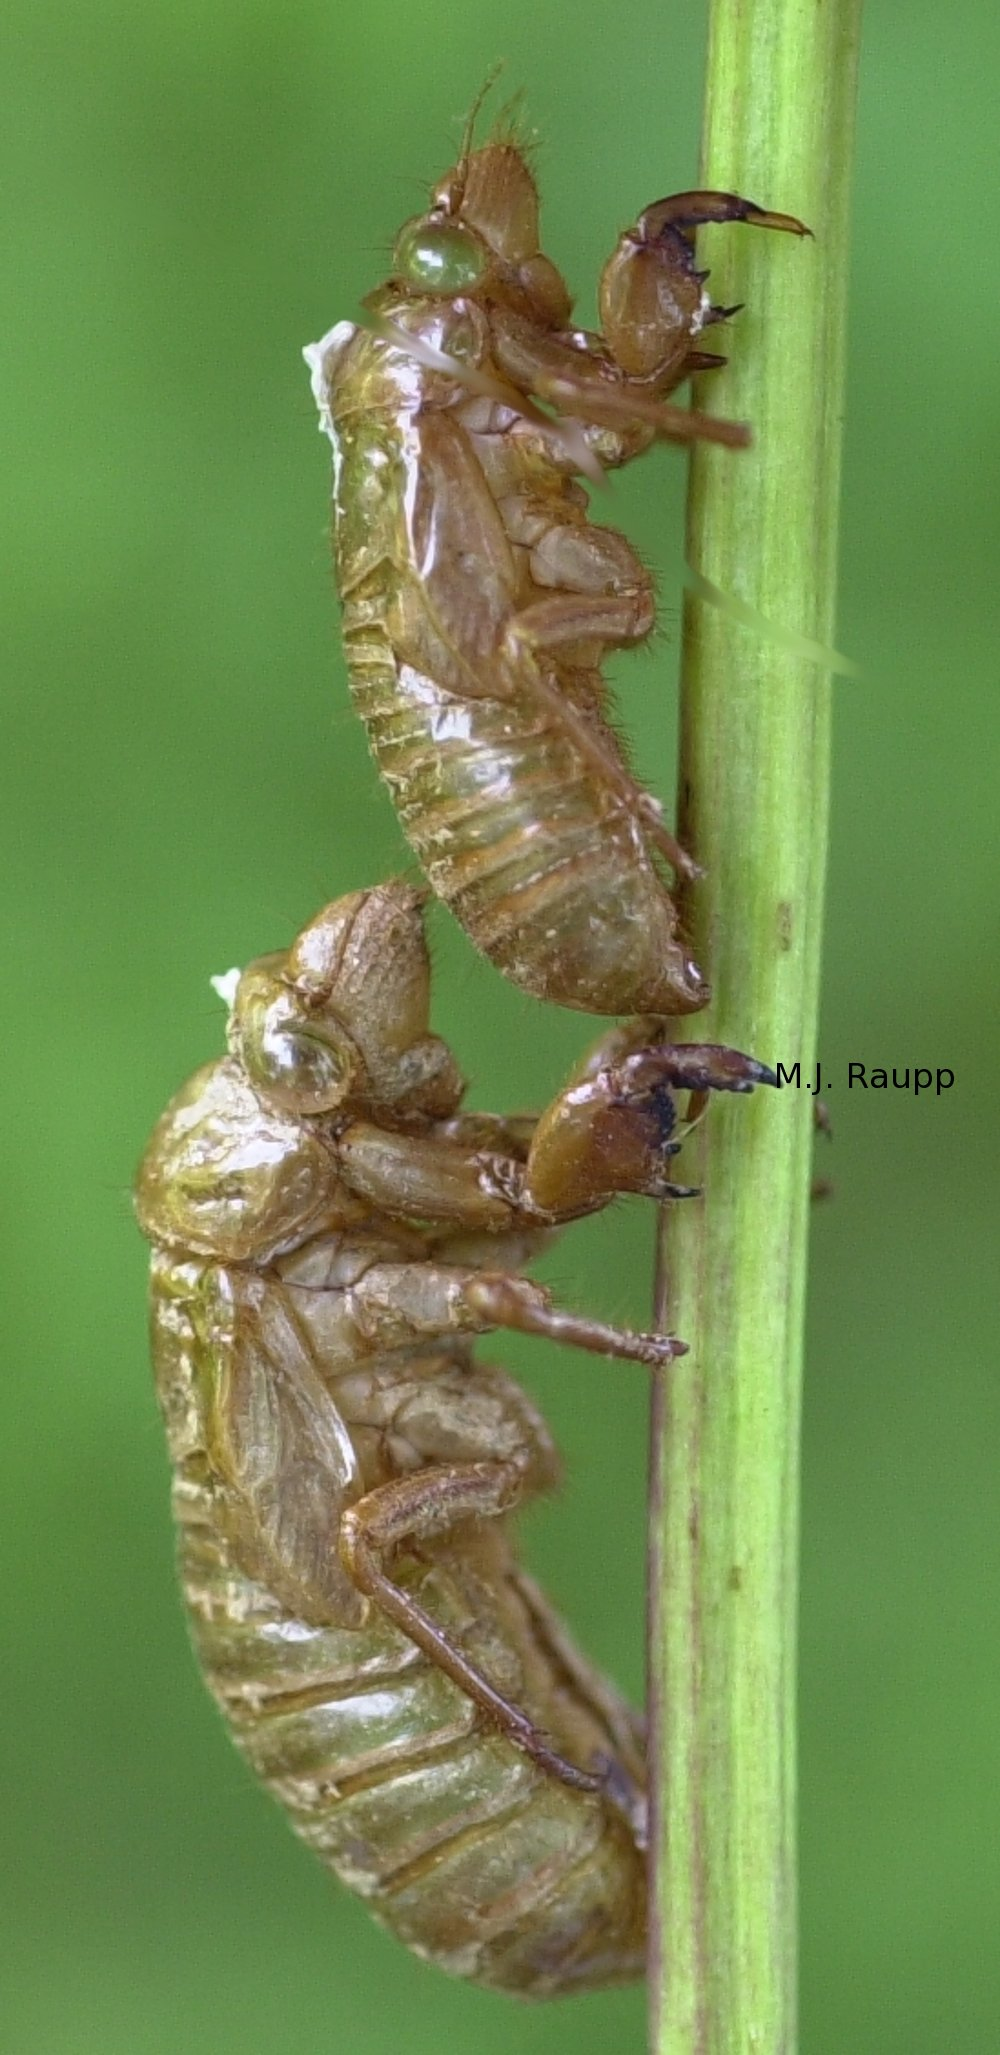 Shed cicada skins, called exuviae, decorate trees and shrubs.